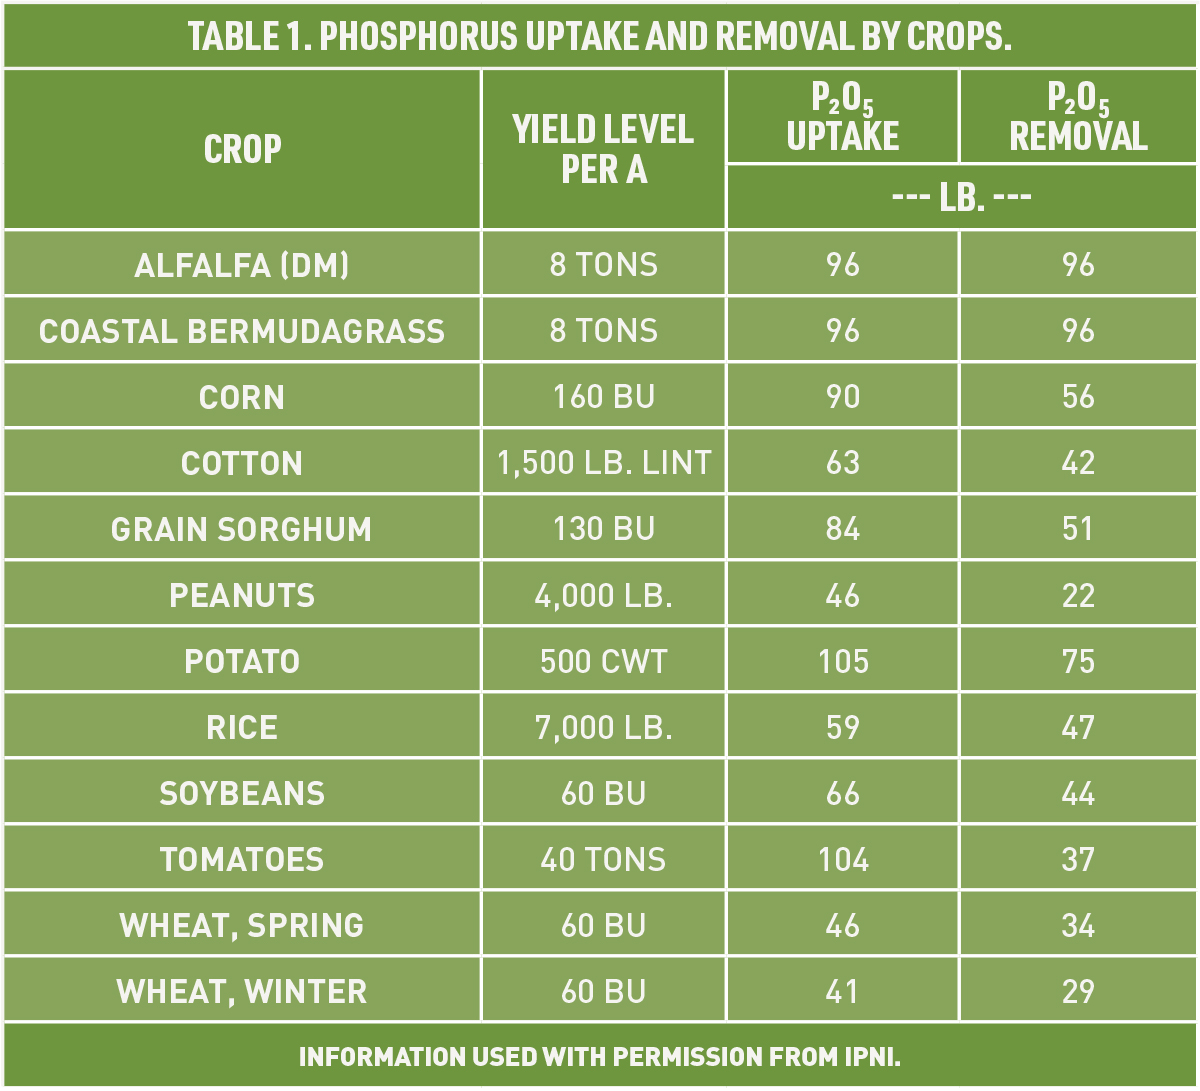 Table 1: Phosphorus uptake and removal by crops